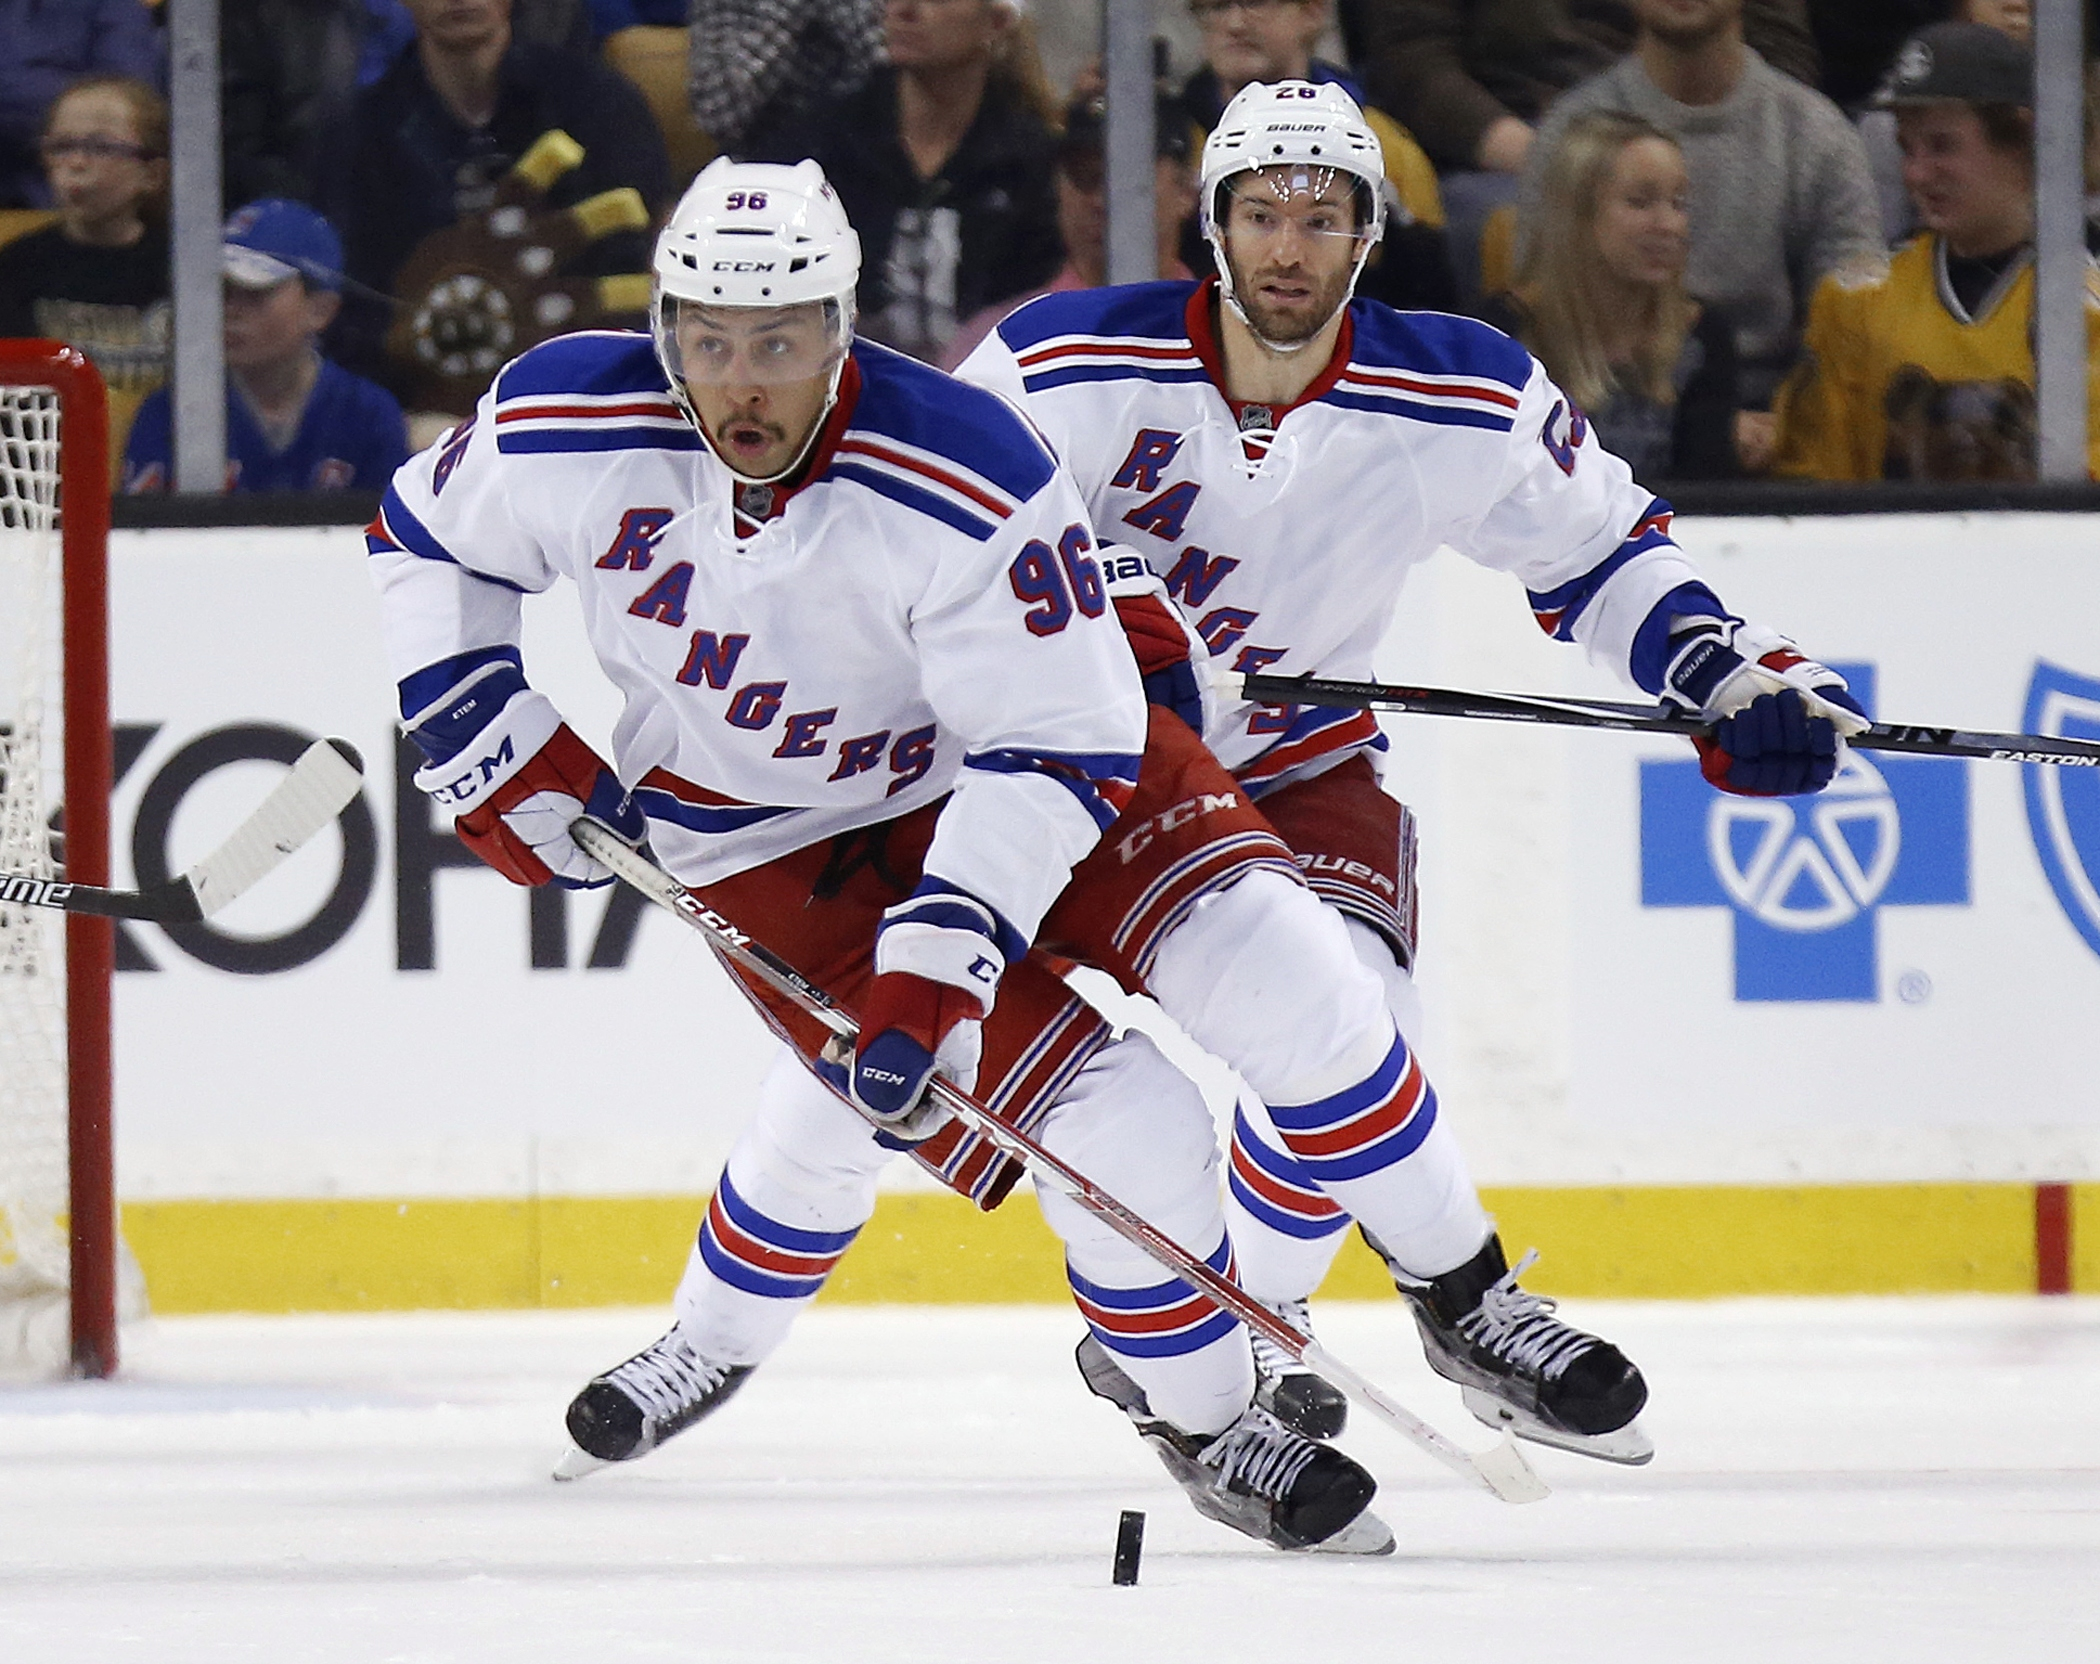 FILE - In this Nov. 27, 2015, file photo, then-New York Rangers' Emerson Etem (96) brings the puck up in front of teammate Dominic Moore (28) during the third period of an NHL hockey game against the Boston Bruins,  in Boston. Following an offseason trade